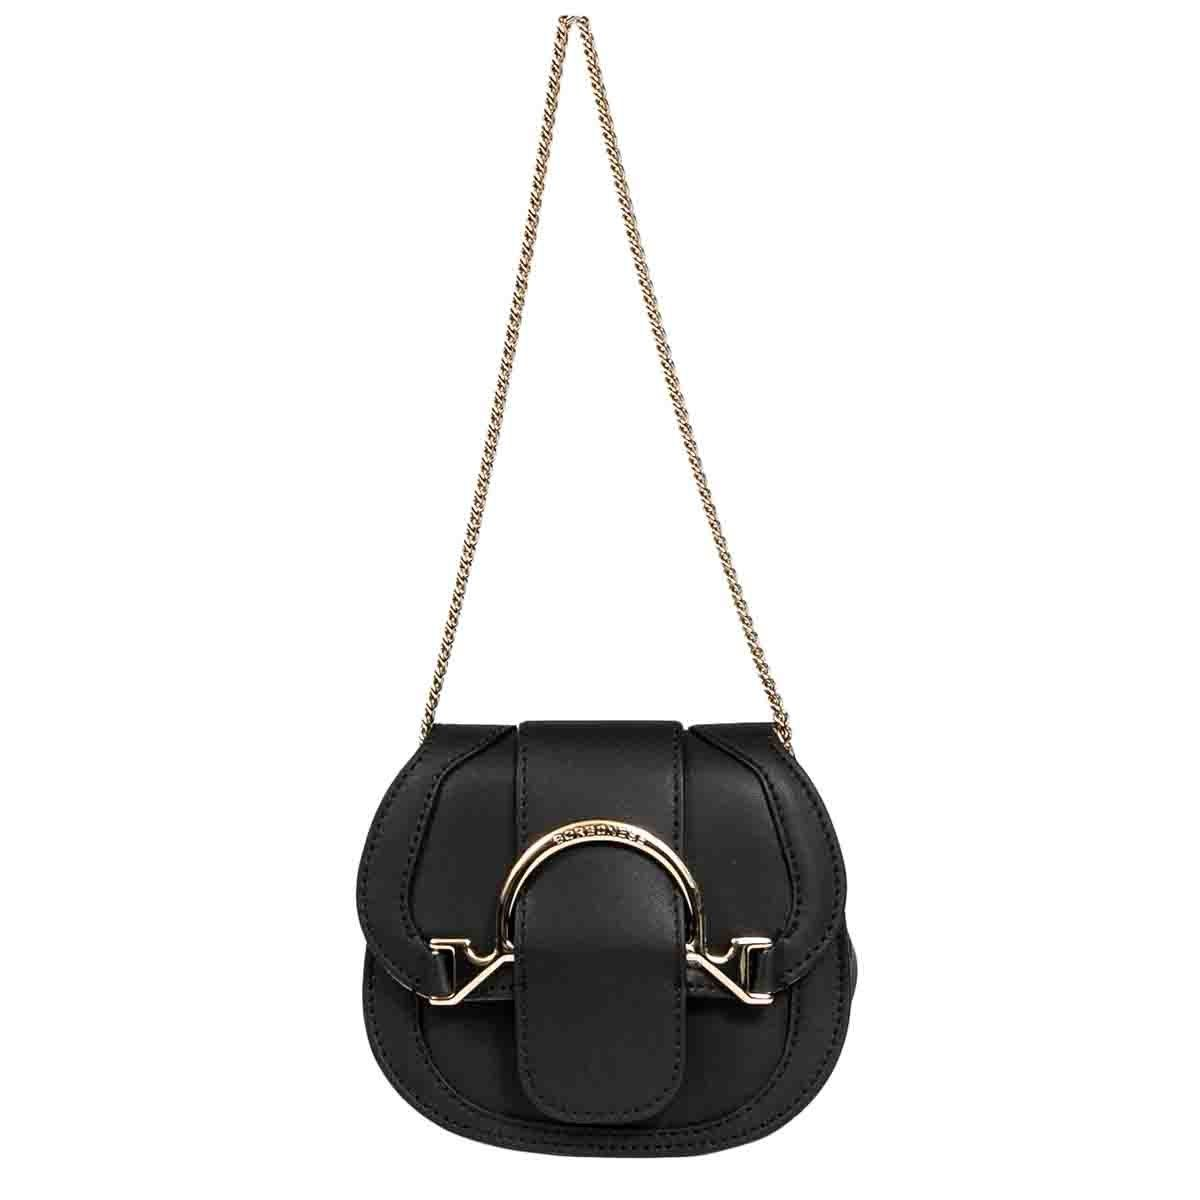 Borbonese BORBONESE WOMEN'S 923439I42100 BLACK LEATHER SHOULDER BAG